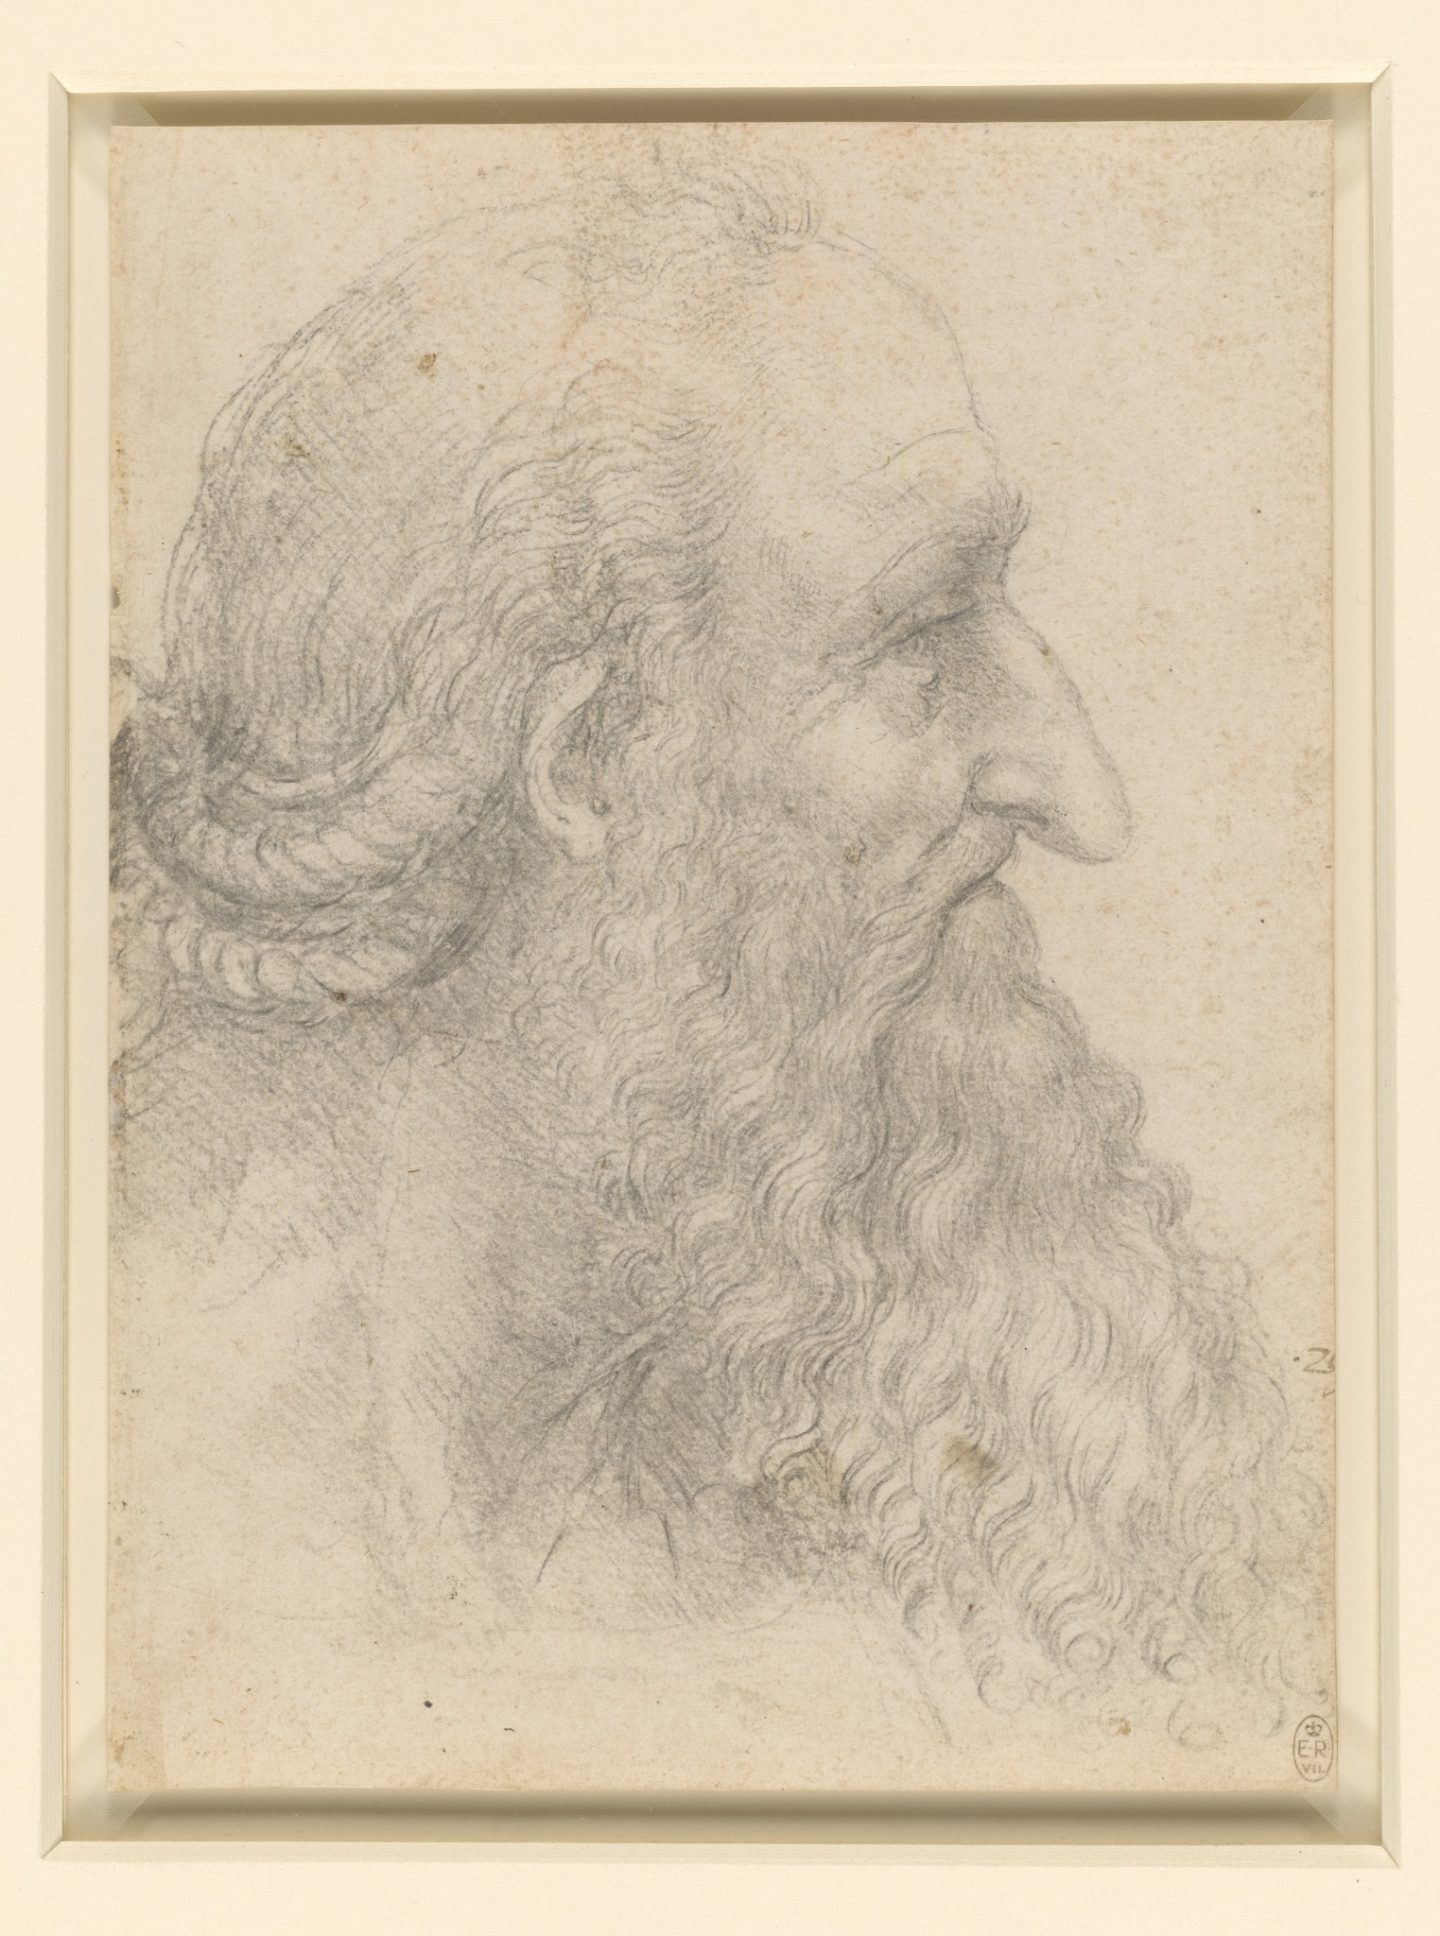 Leonardo Da Vinci: A Life in Drawing Opens at Birmingham Museum & Art Gallery